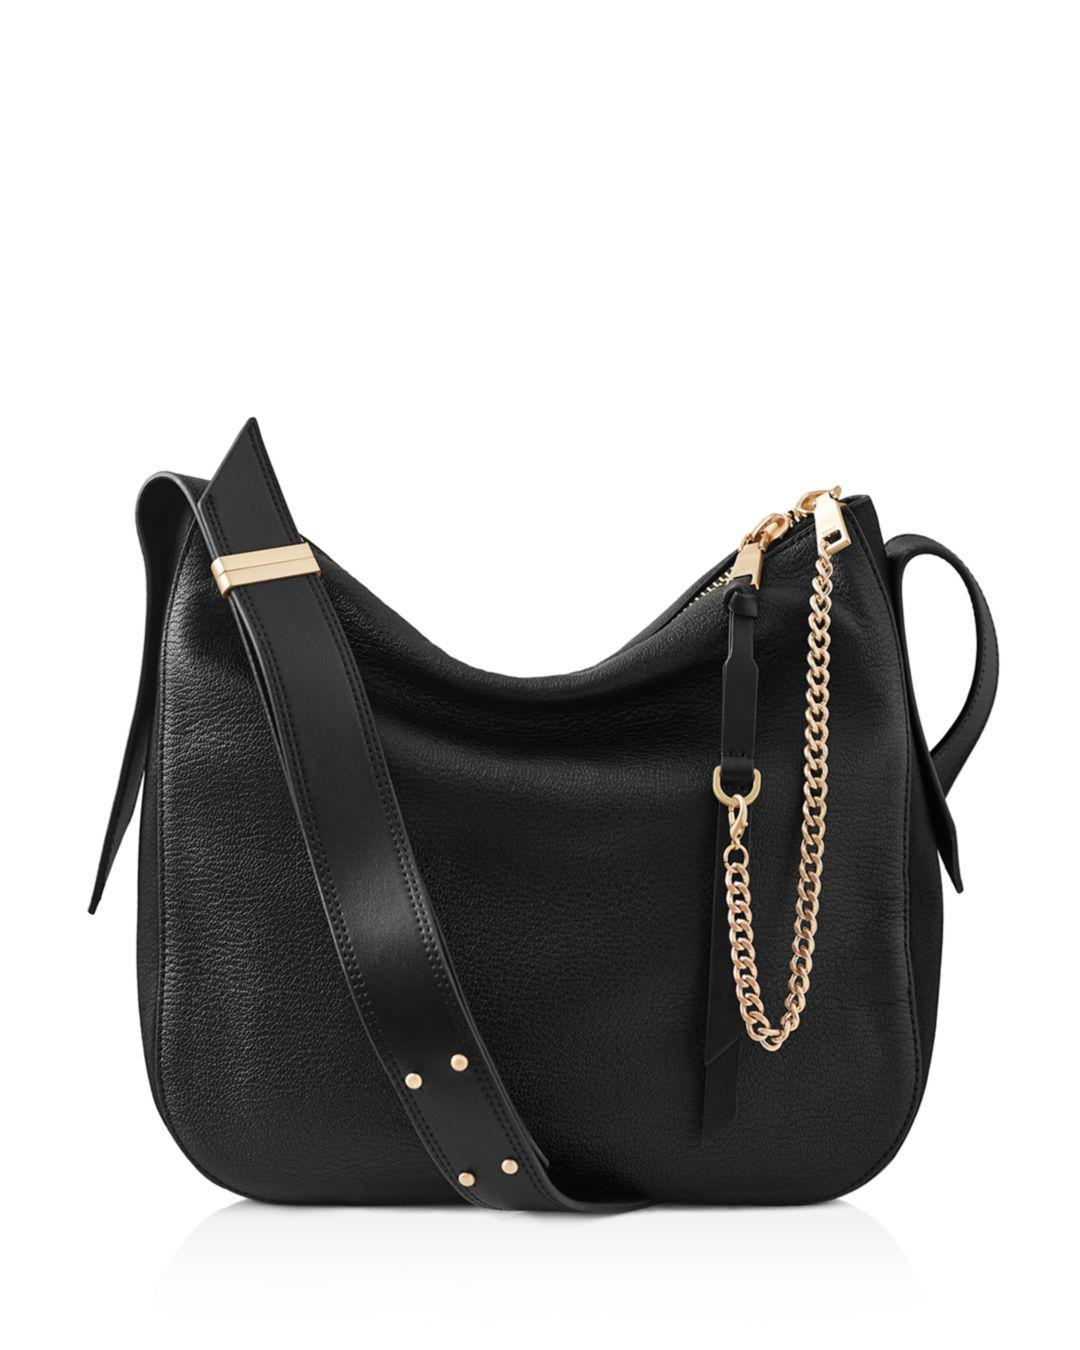 14969e8c63 Lyst - Reiss Relaxed Leather Shoulder Bag in Black